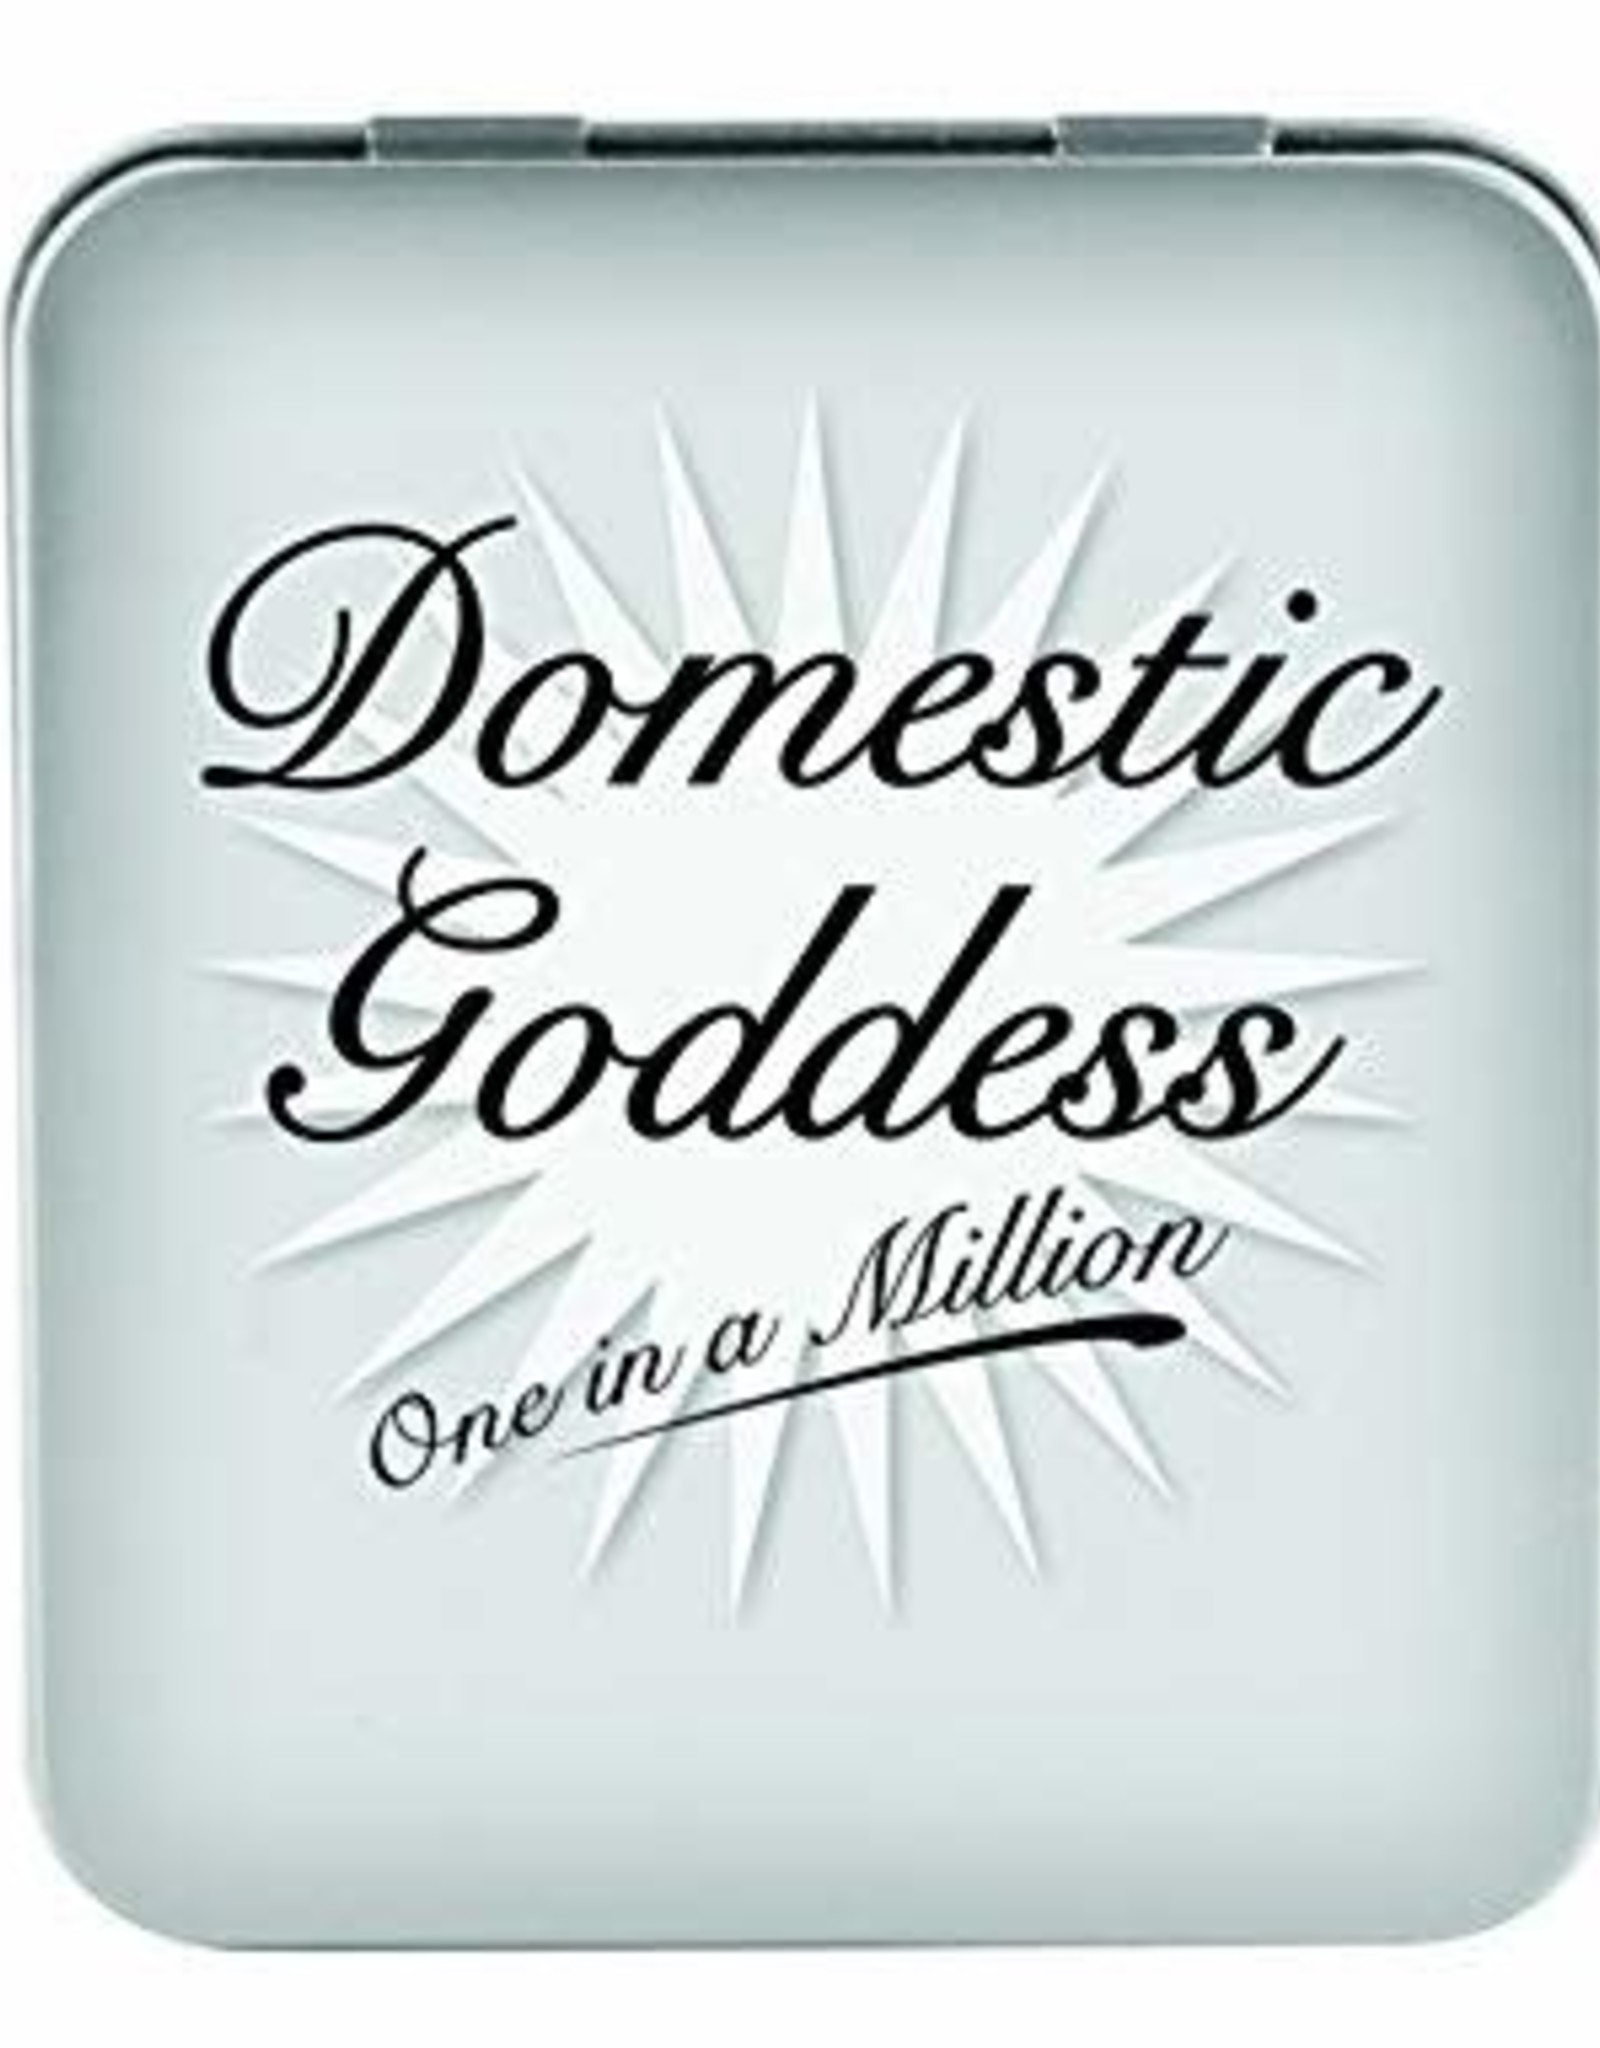 Elgate Mints Domestic Goddess 45 g